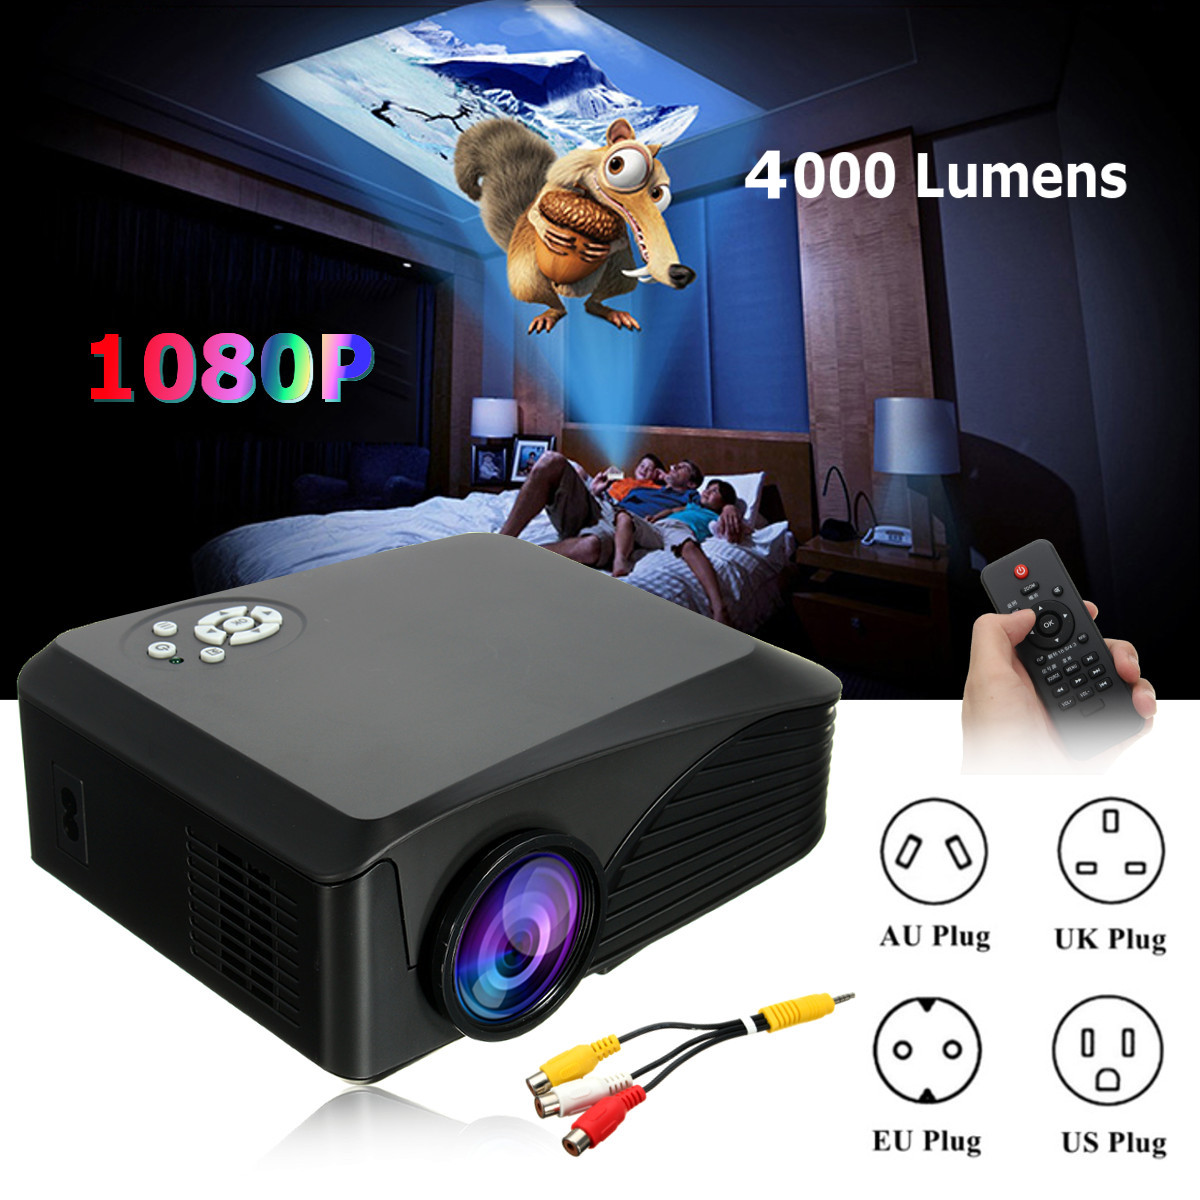 LEORY BP-M400 1080P HD 7000 Lumens 3D LED Projector Multimedia Cinema Theater USB AV TV Home Theatre System